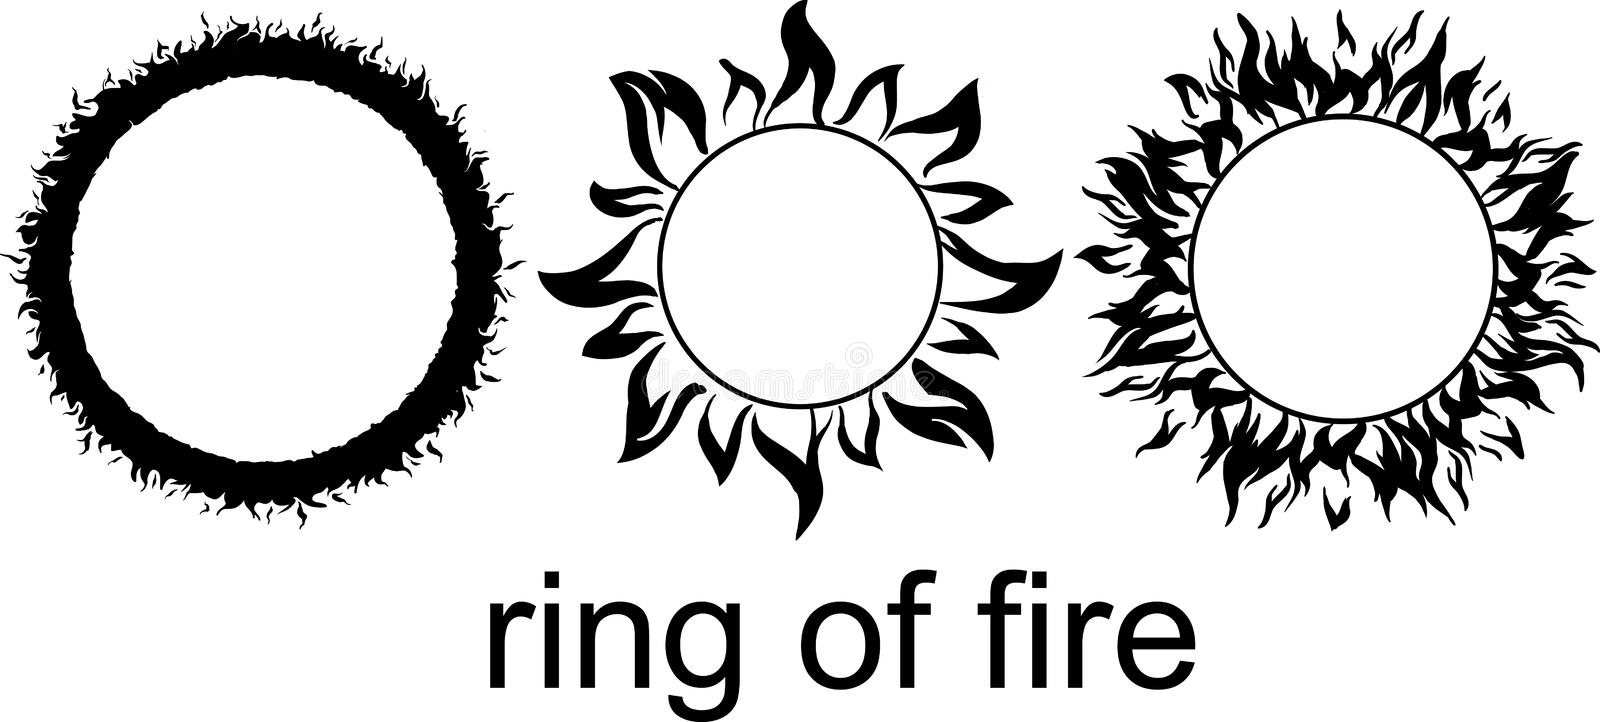 Ring of fire royalty free stock photography